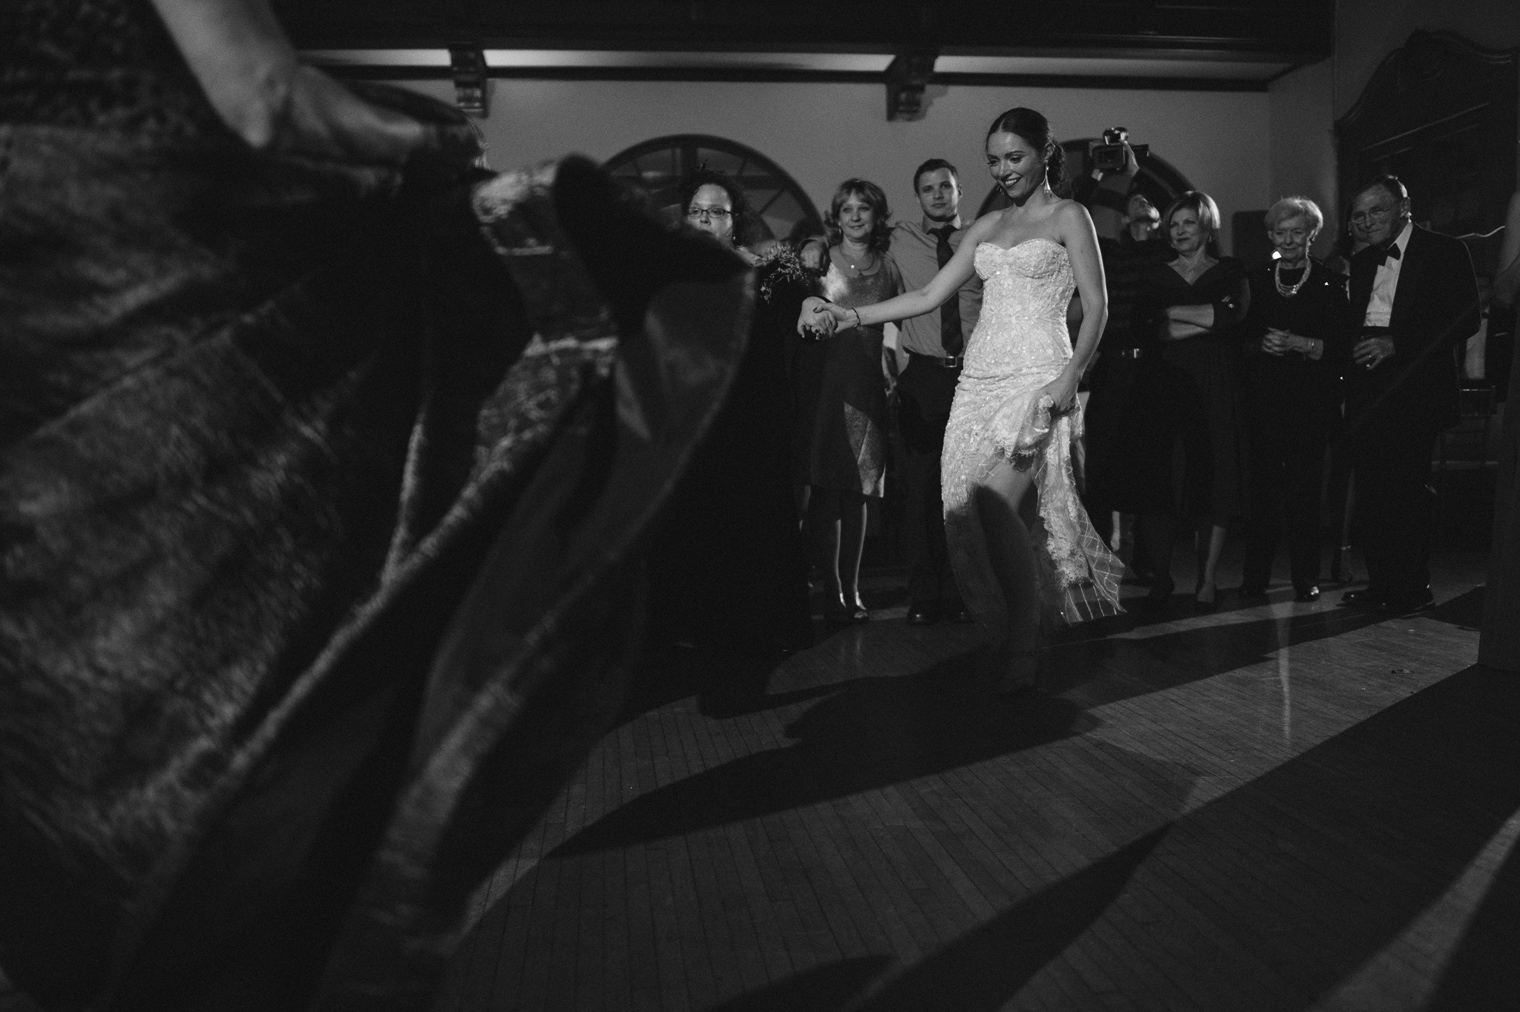 The bride, groom, and guests do traditional Ukrainian dances at a Detroit Yacht Club wedding by Michigan Photographer Heather Jowett.